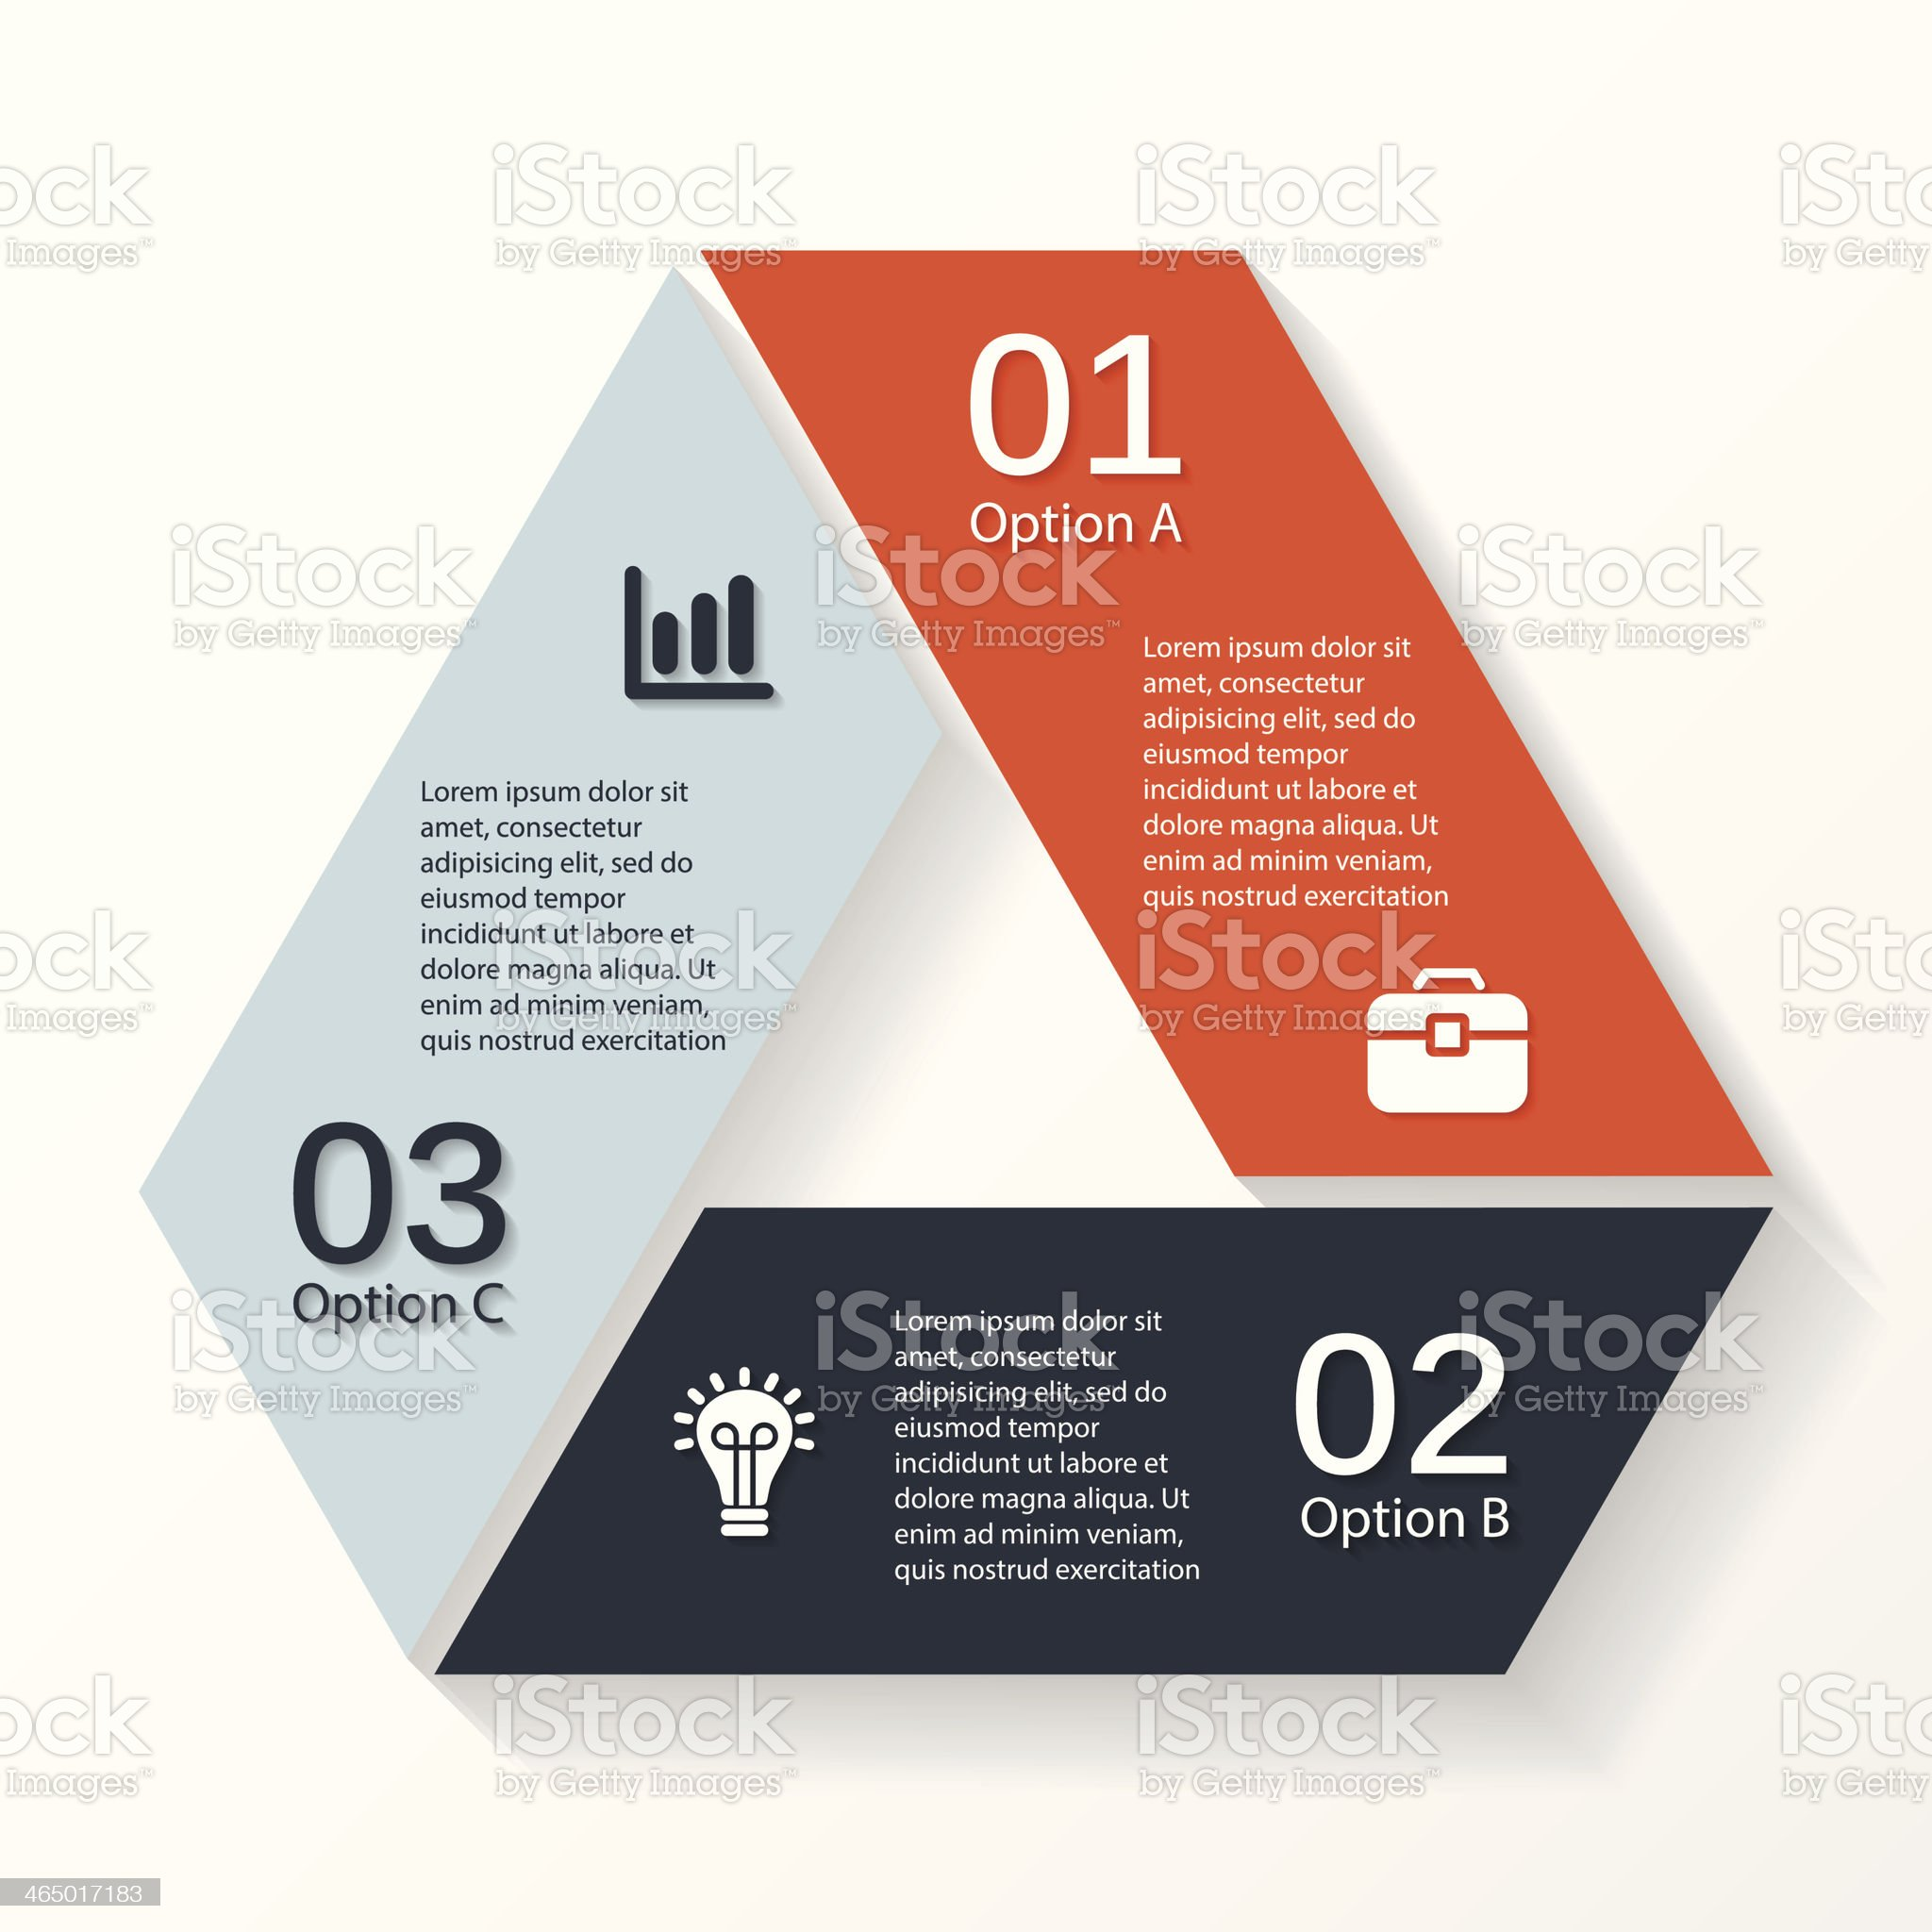 Modern vector info graphic for business project royalty-free stock vector art